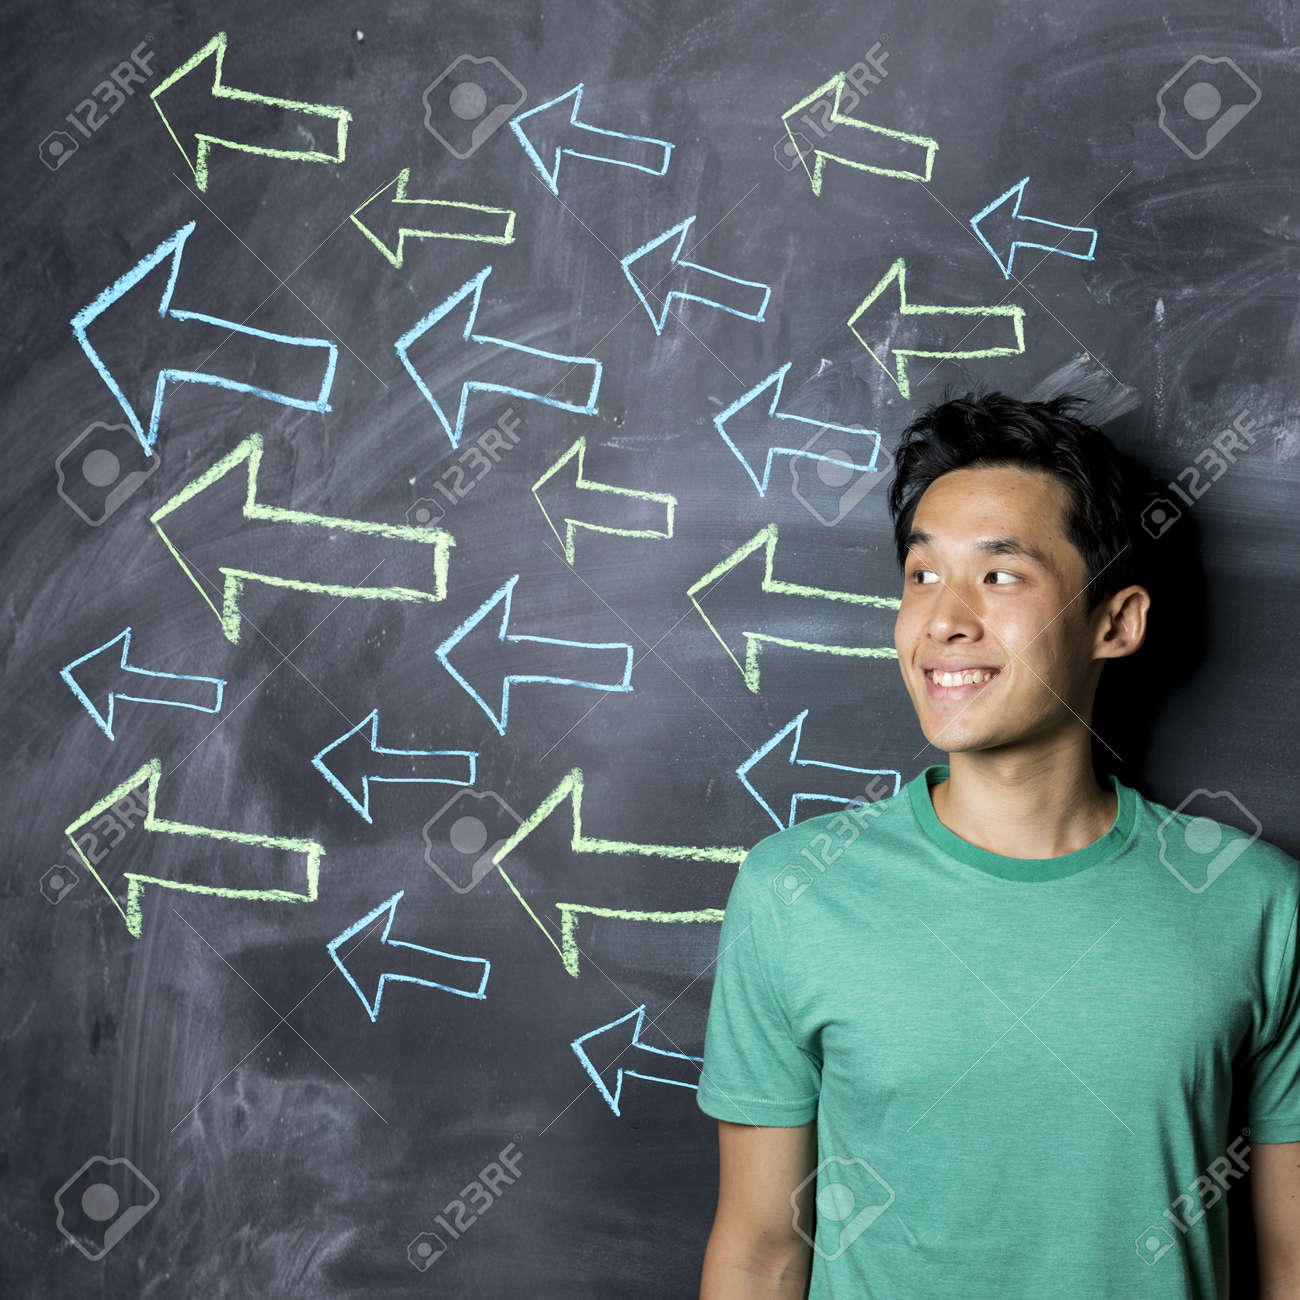 Happy Asian man standing in front of a dark chalkboard with arrow signs drawn pointing. Stock Photo - 21932225